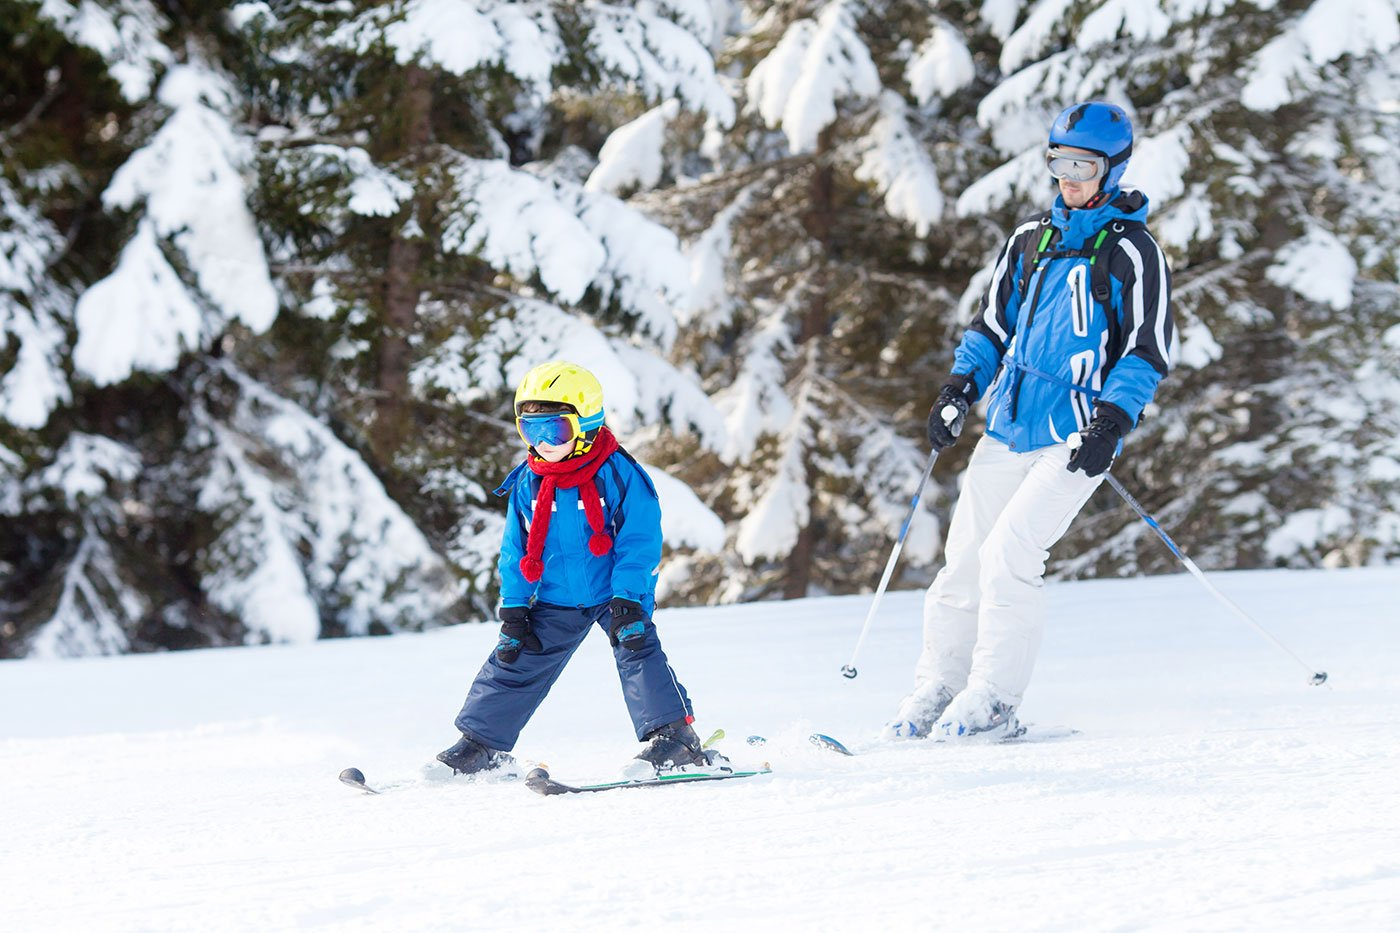 Father and son skiing